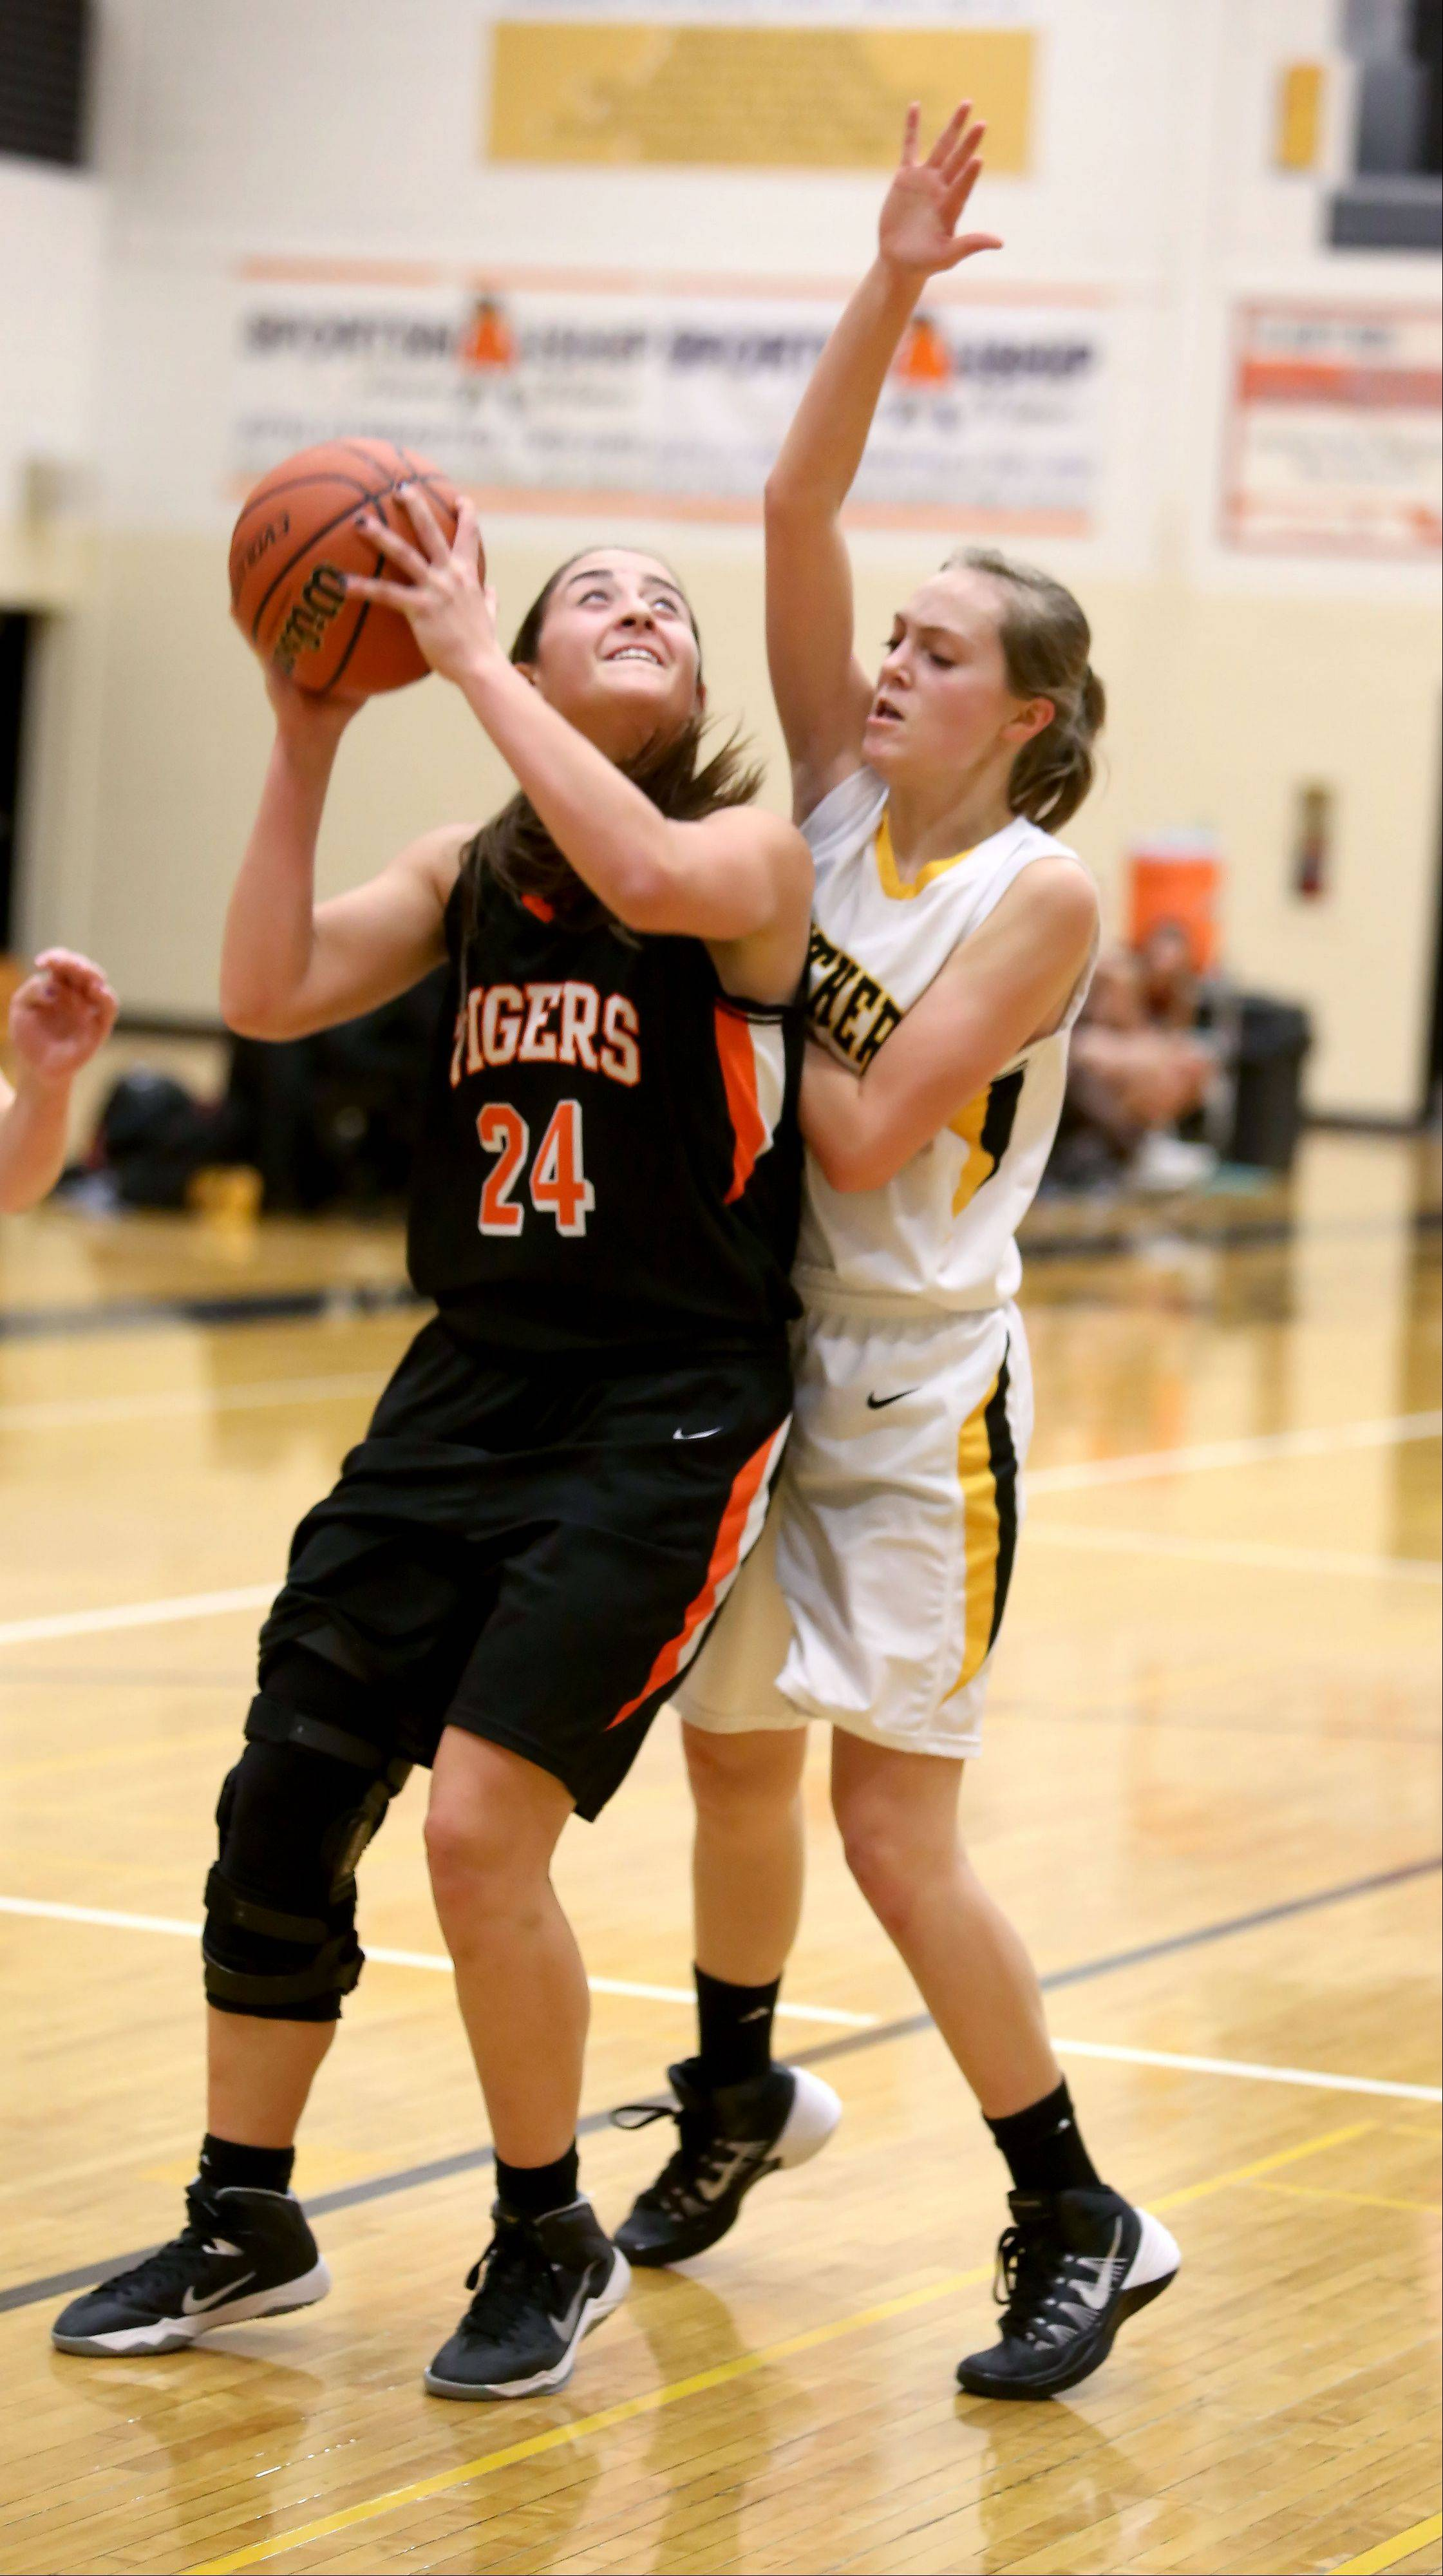 Wheaton Warrenville South's Maggie Dansdill, left, looks to make a basket as Katie Chamberlain of Glenbard North defends.